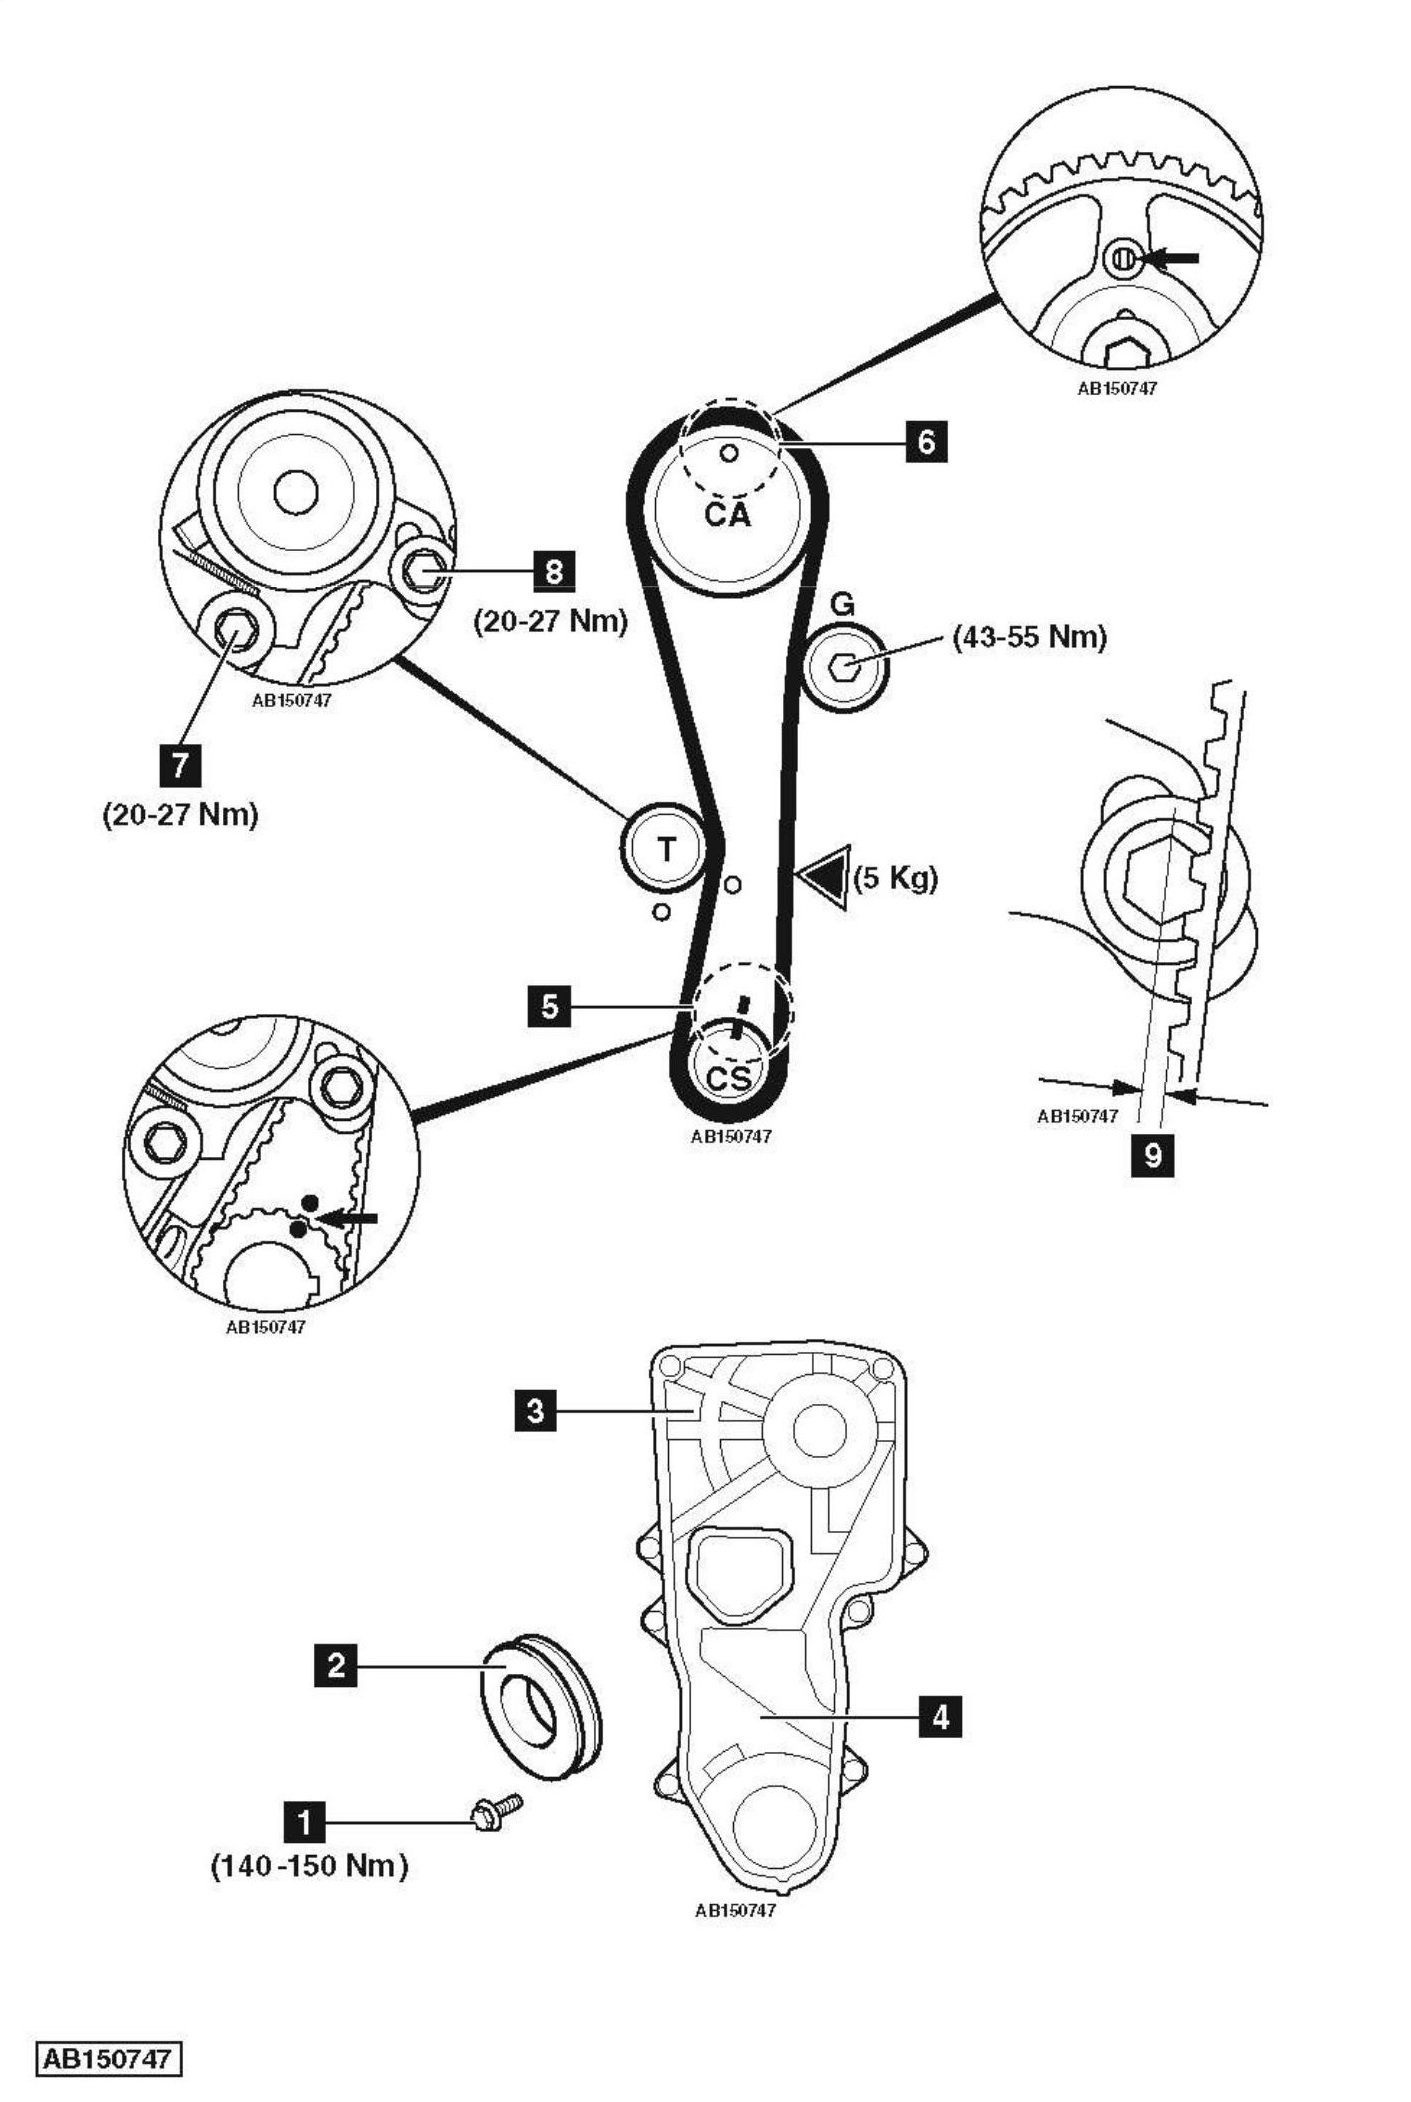 Service manual [2005 Hyundai Elantra Timing Chain